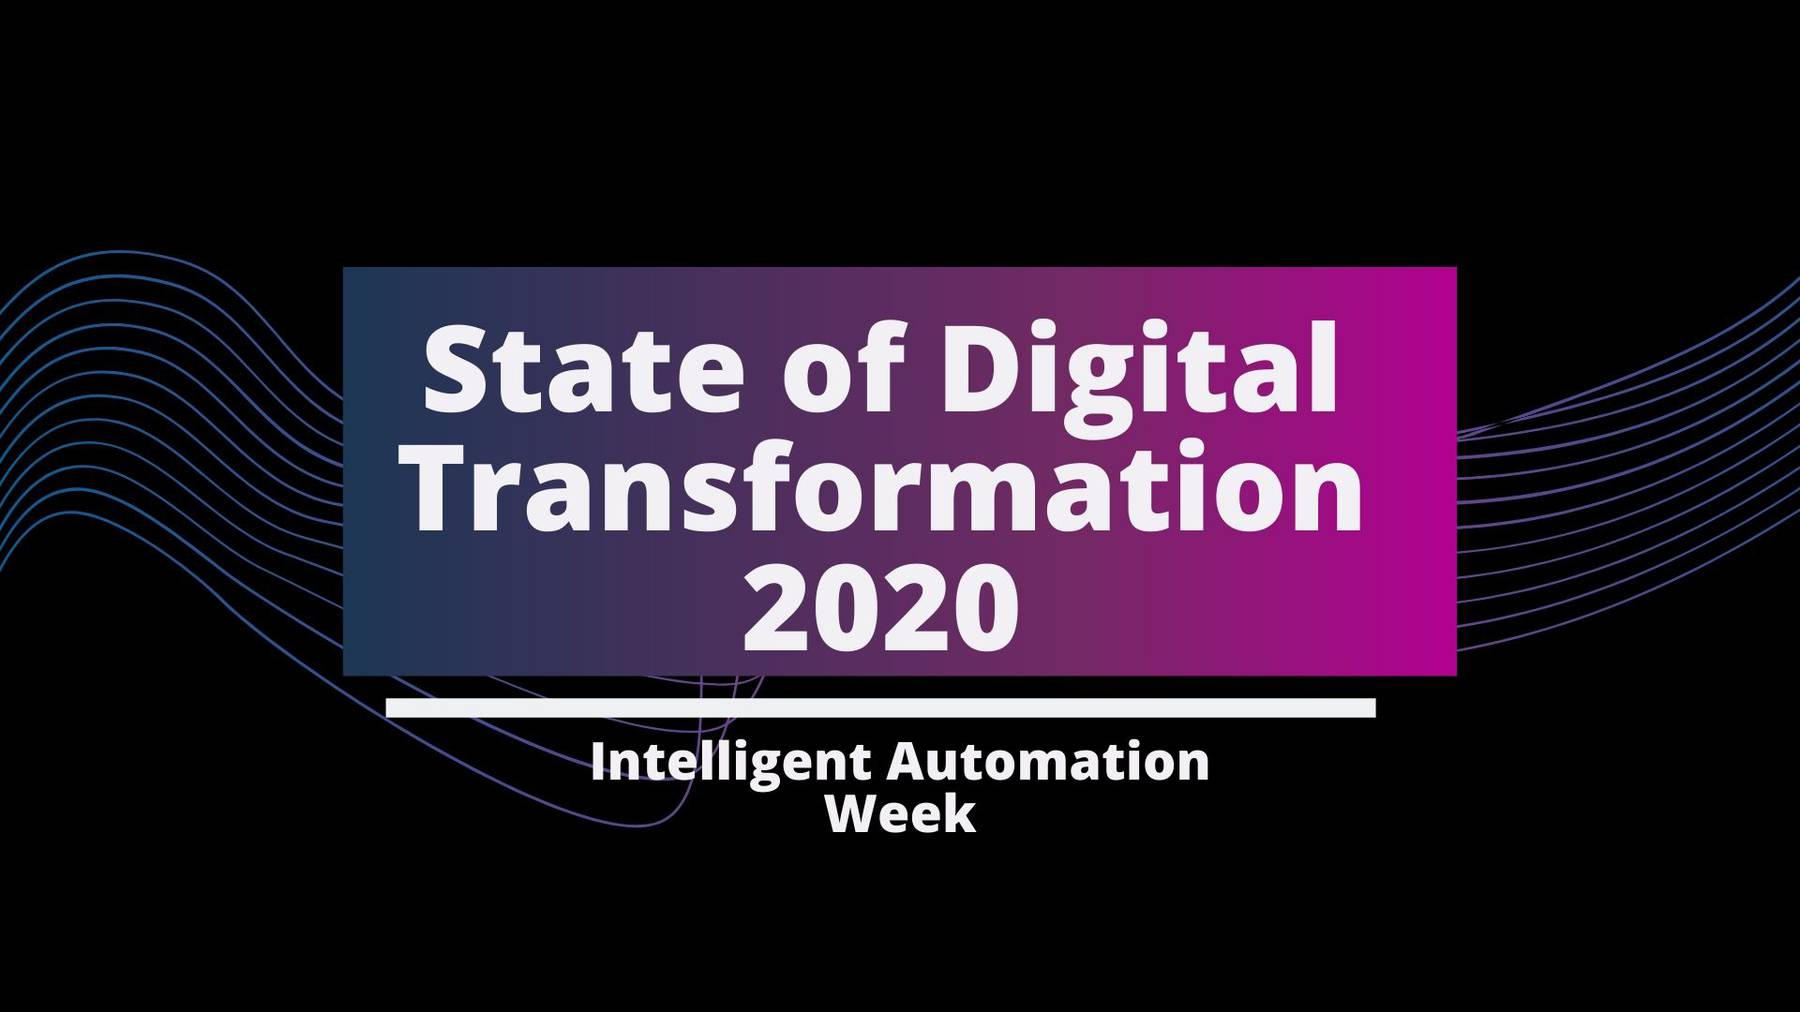 Intelligent Automation Week Digital 2020